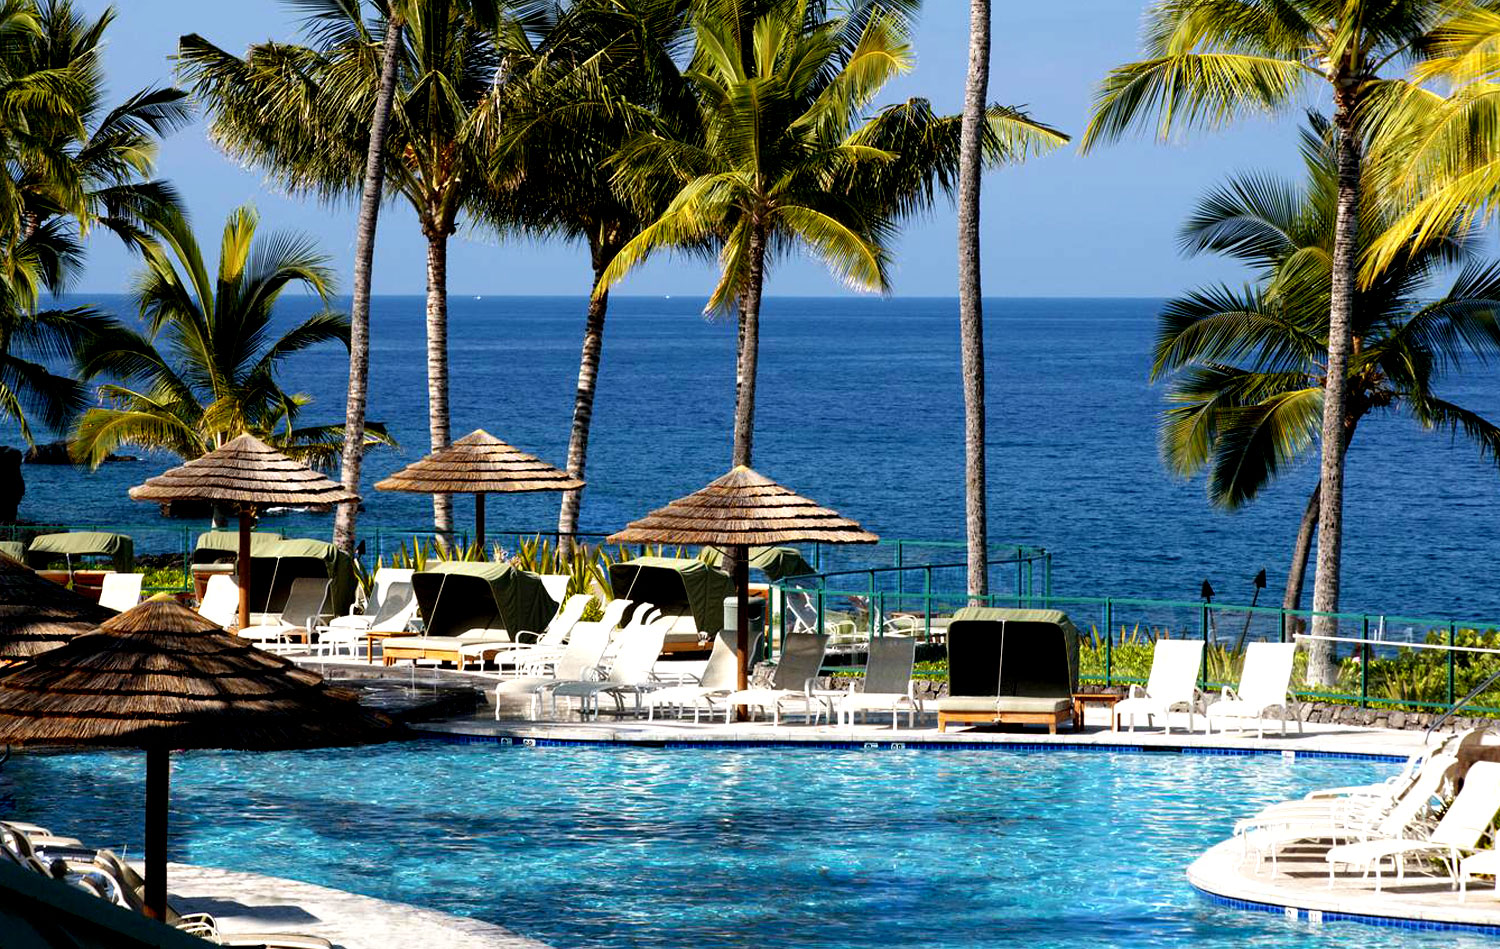 Hawaii Hotels Near The Beach